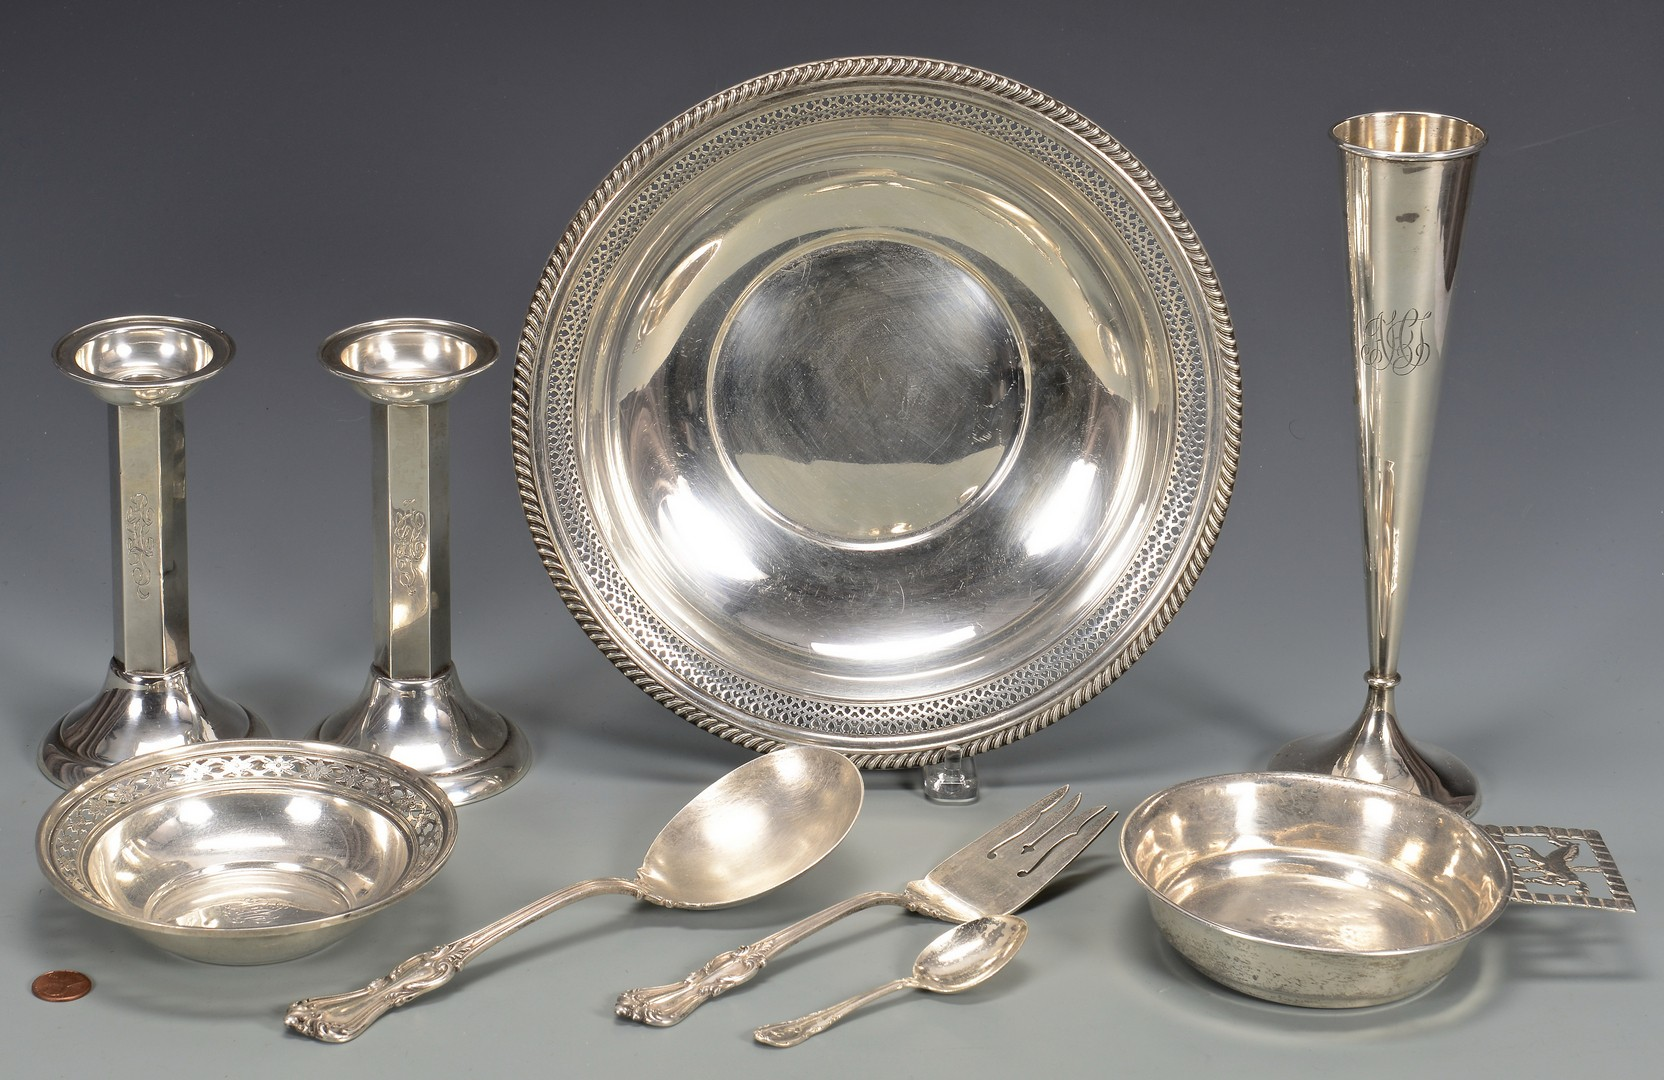 Lot 826: 9 Sterling Silver Table Items incl. candlesticks